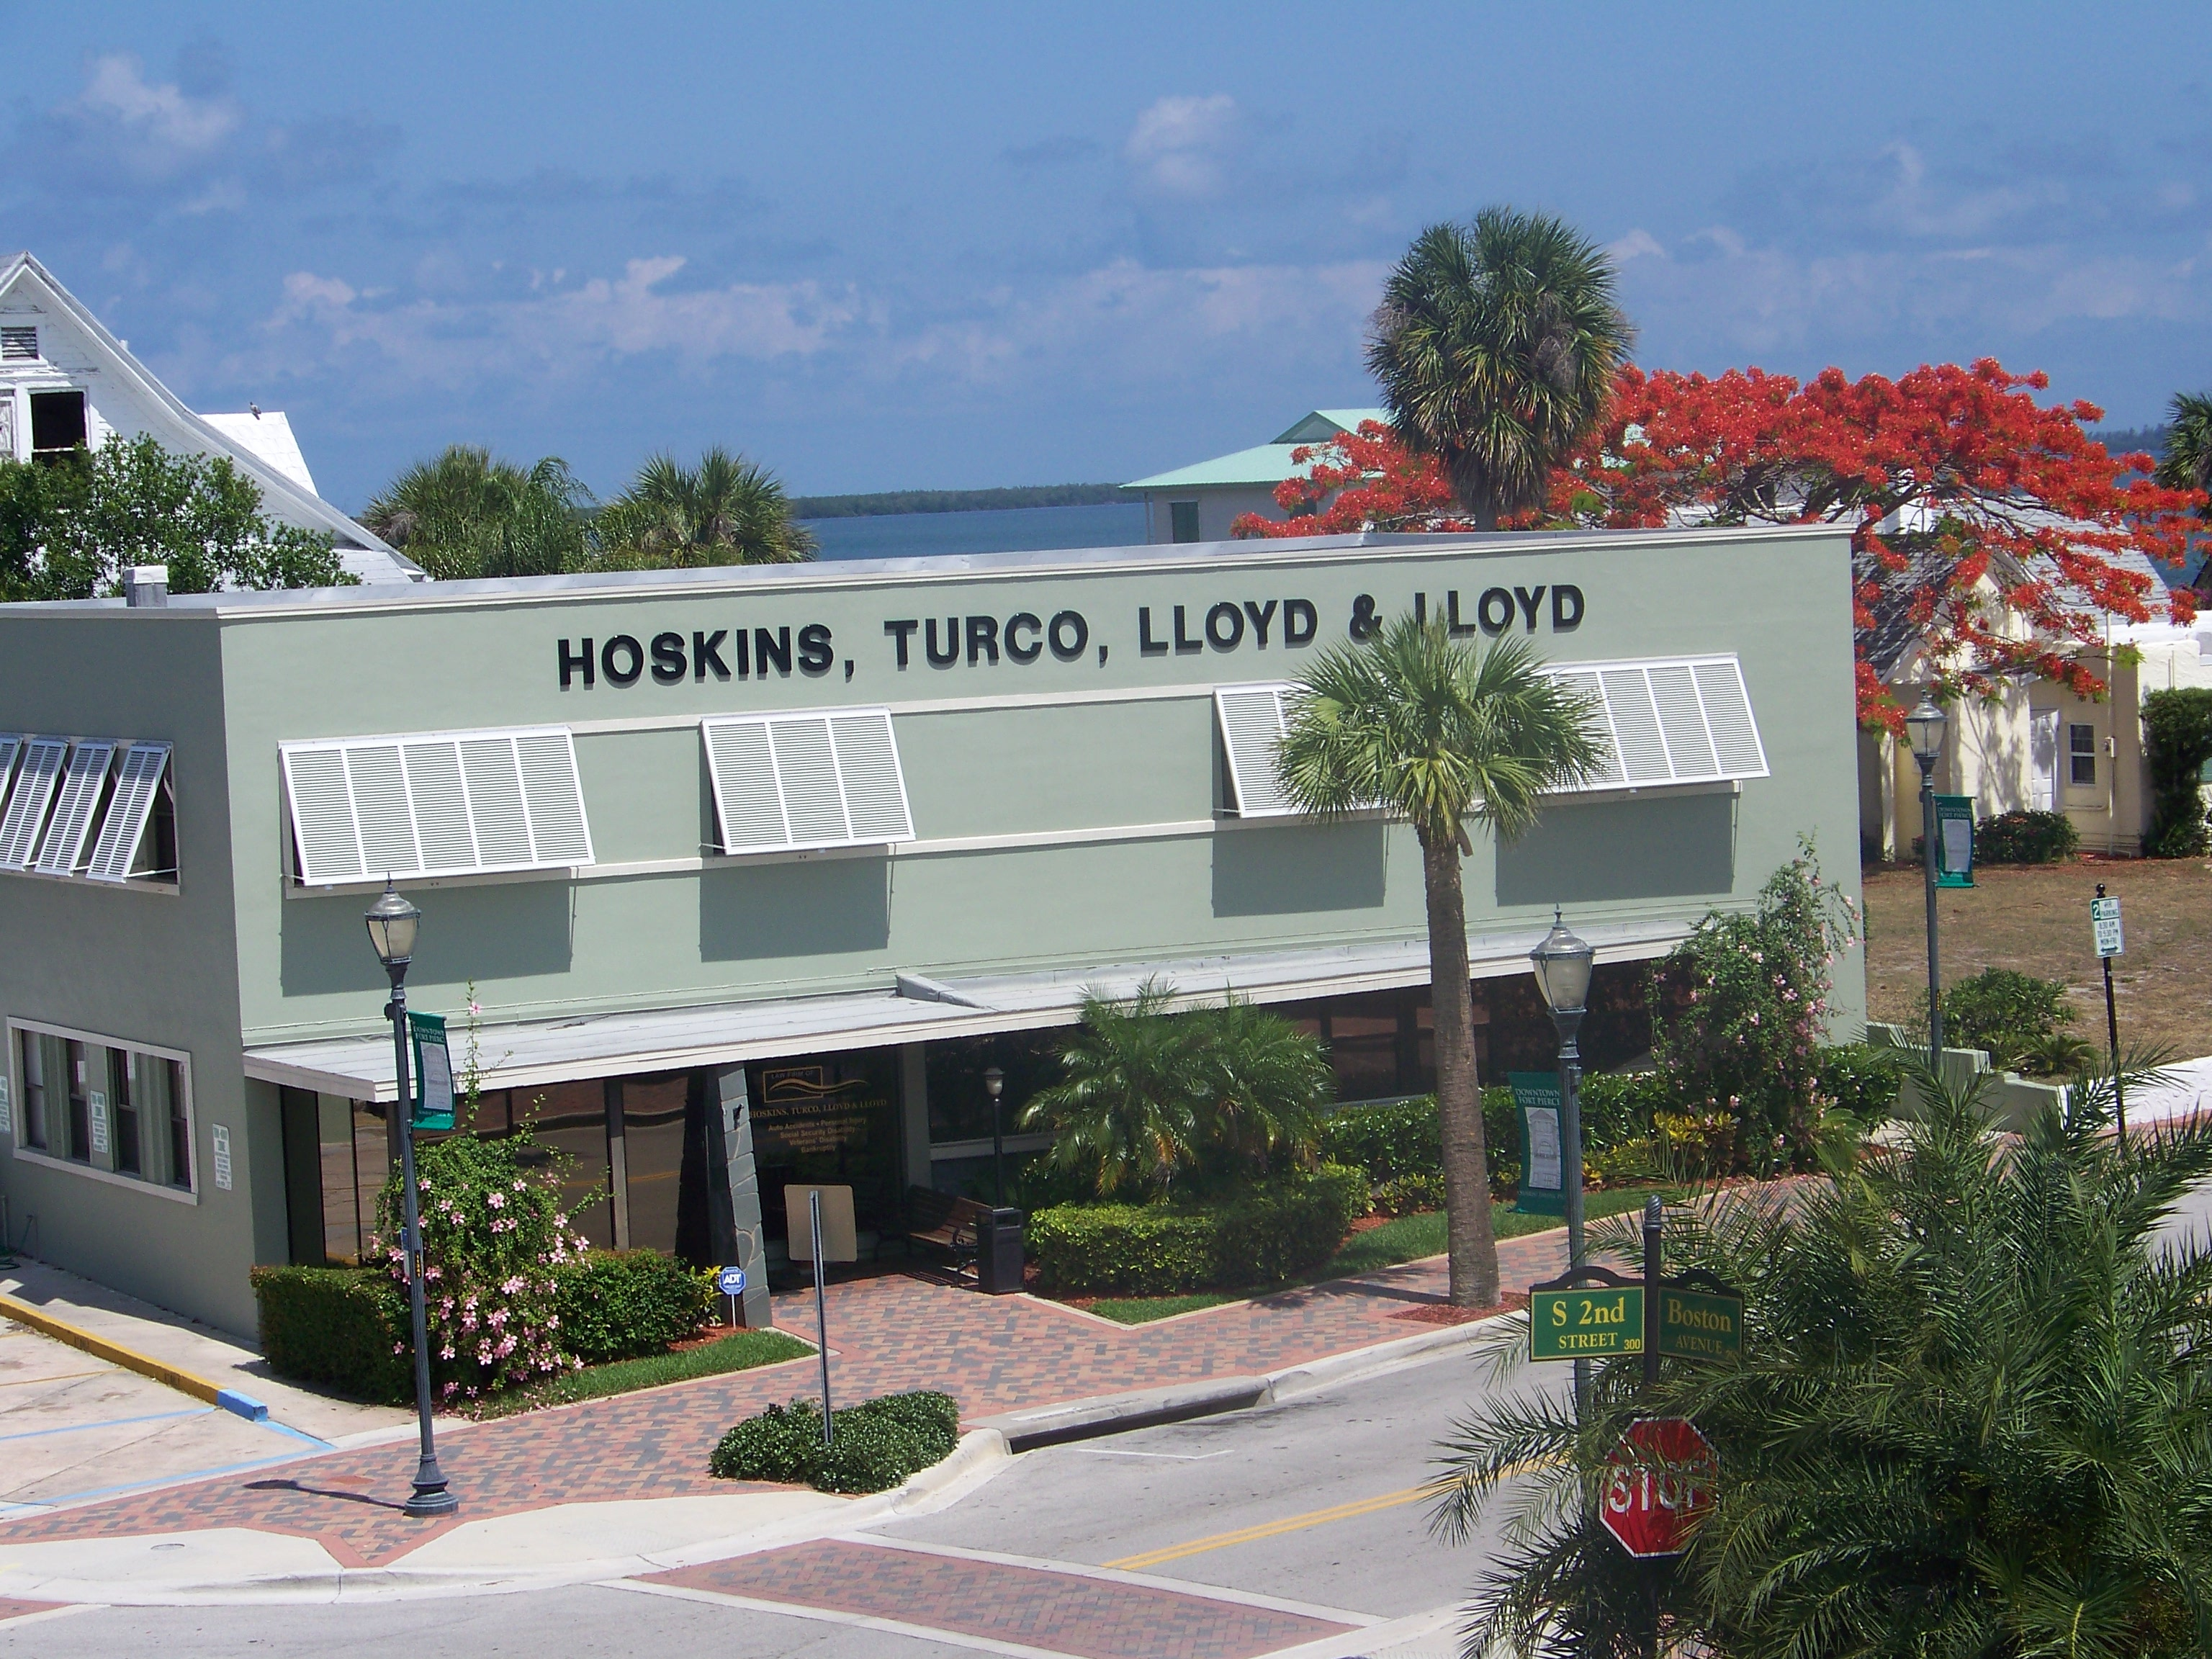 Law Firm of Hoskins, Turco, Lloyd & Lloyd, Fort Pierce reviews | Personal Injury Law at 302 S 2nd St - Fort Pierce FL